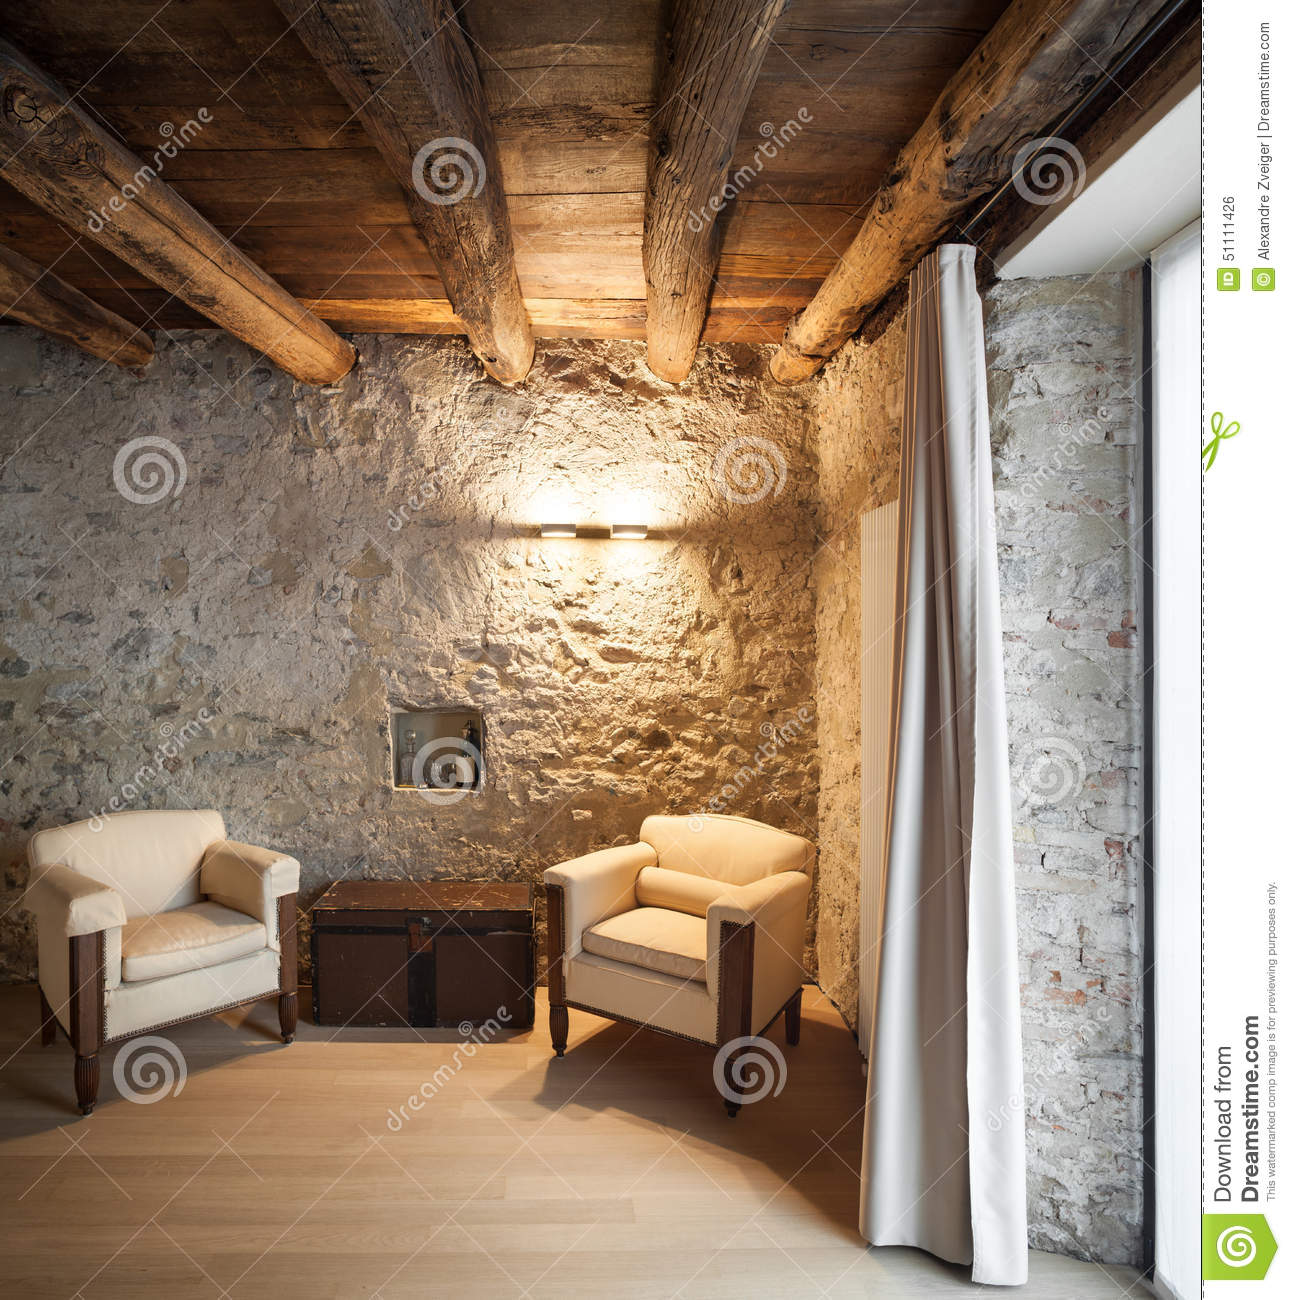 Comfortable Loft Furnished Stock Photo. Image Of Indoor